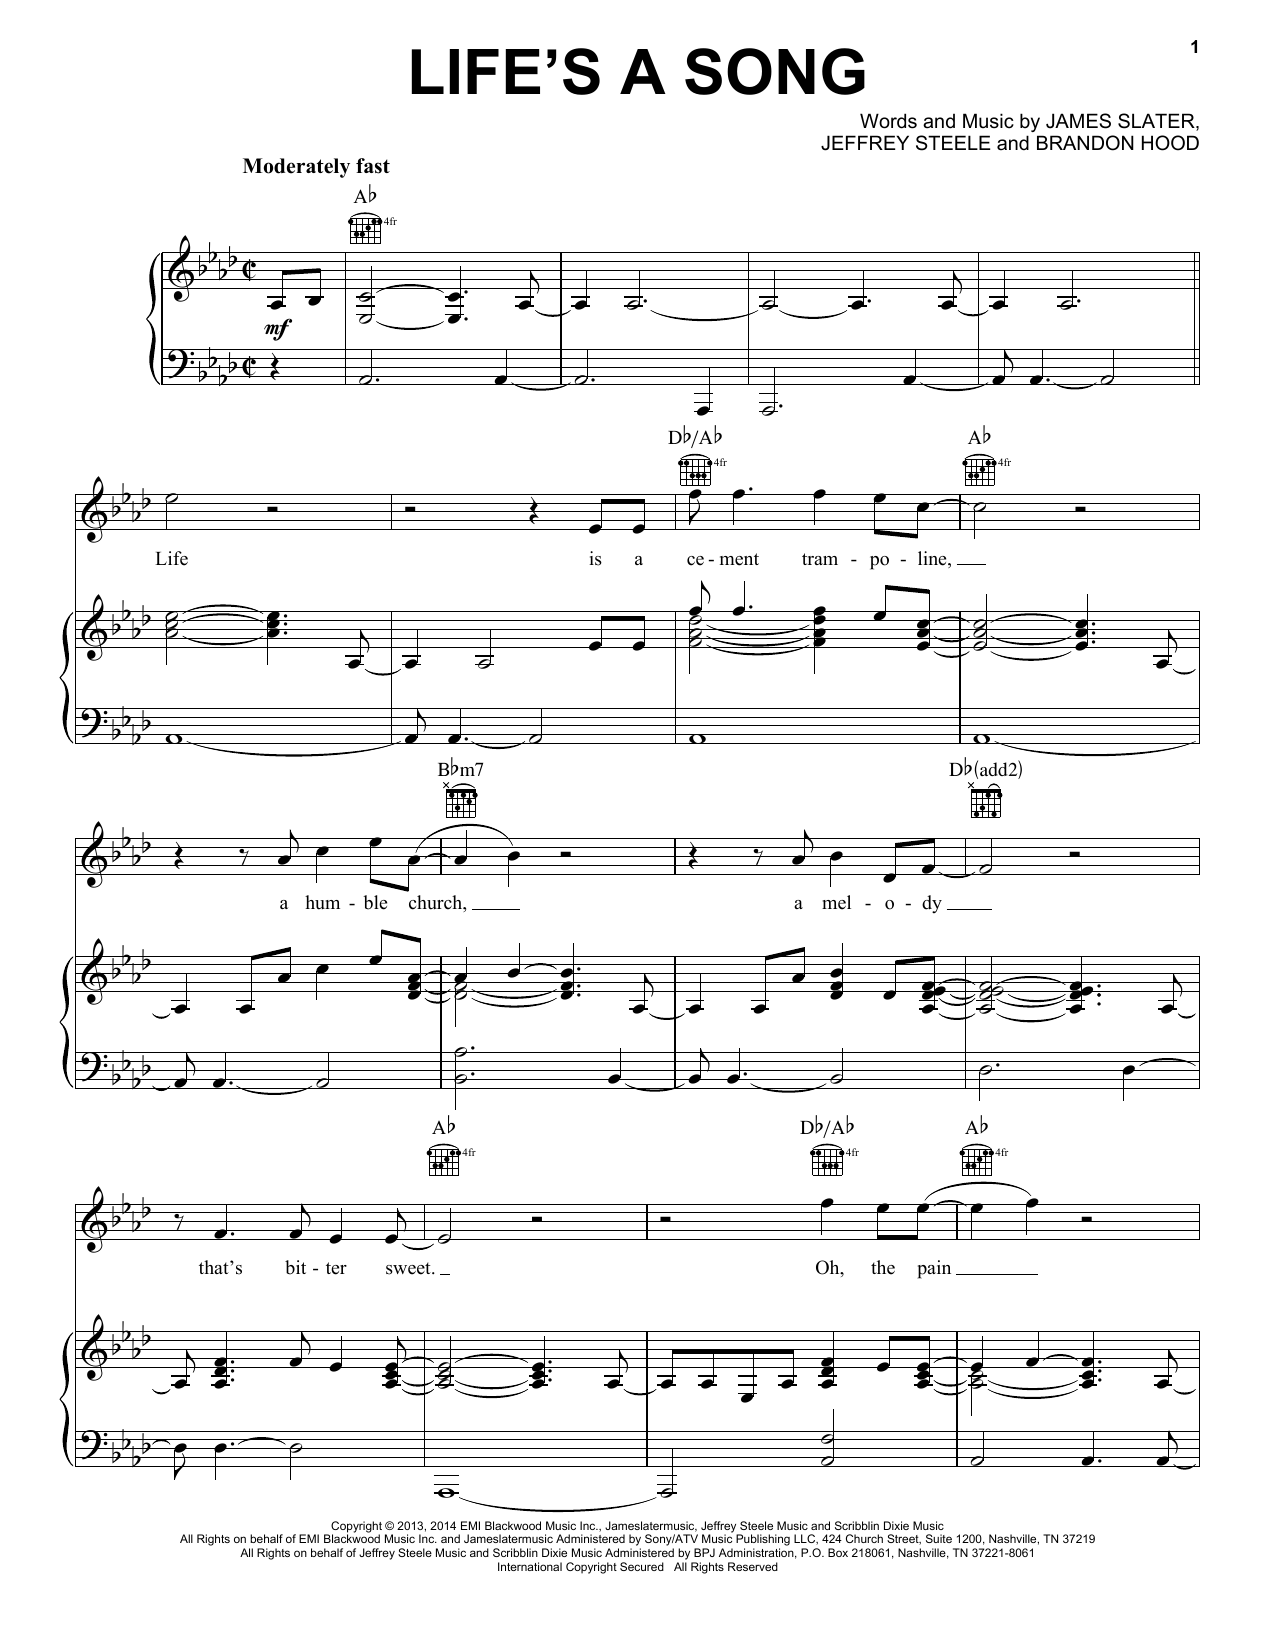 Rascal Flatts Life's A Song sheet music notes and chords. Download Printable PDF.